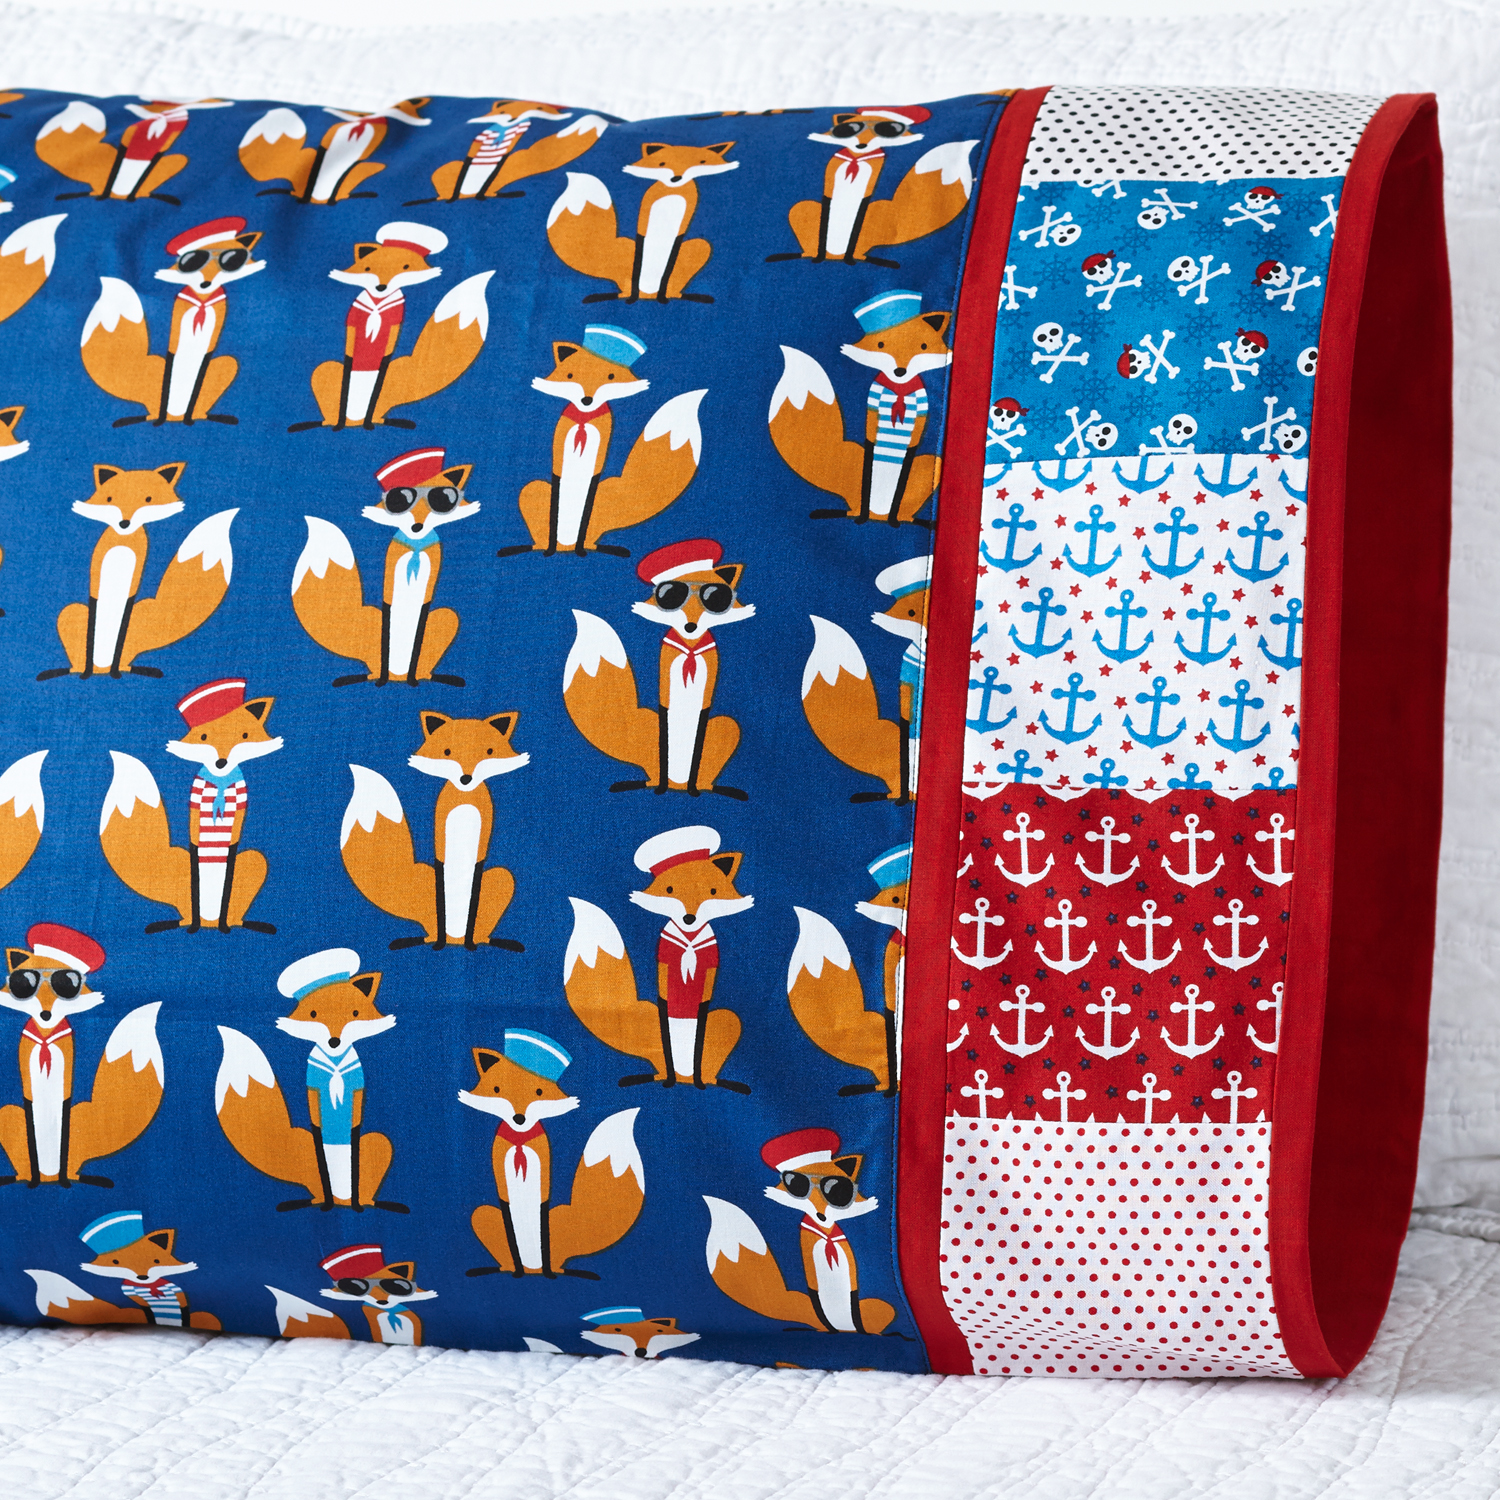 Fox pillowcase with square design band